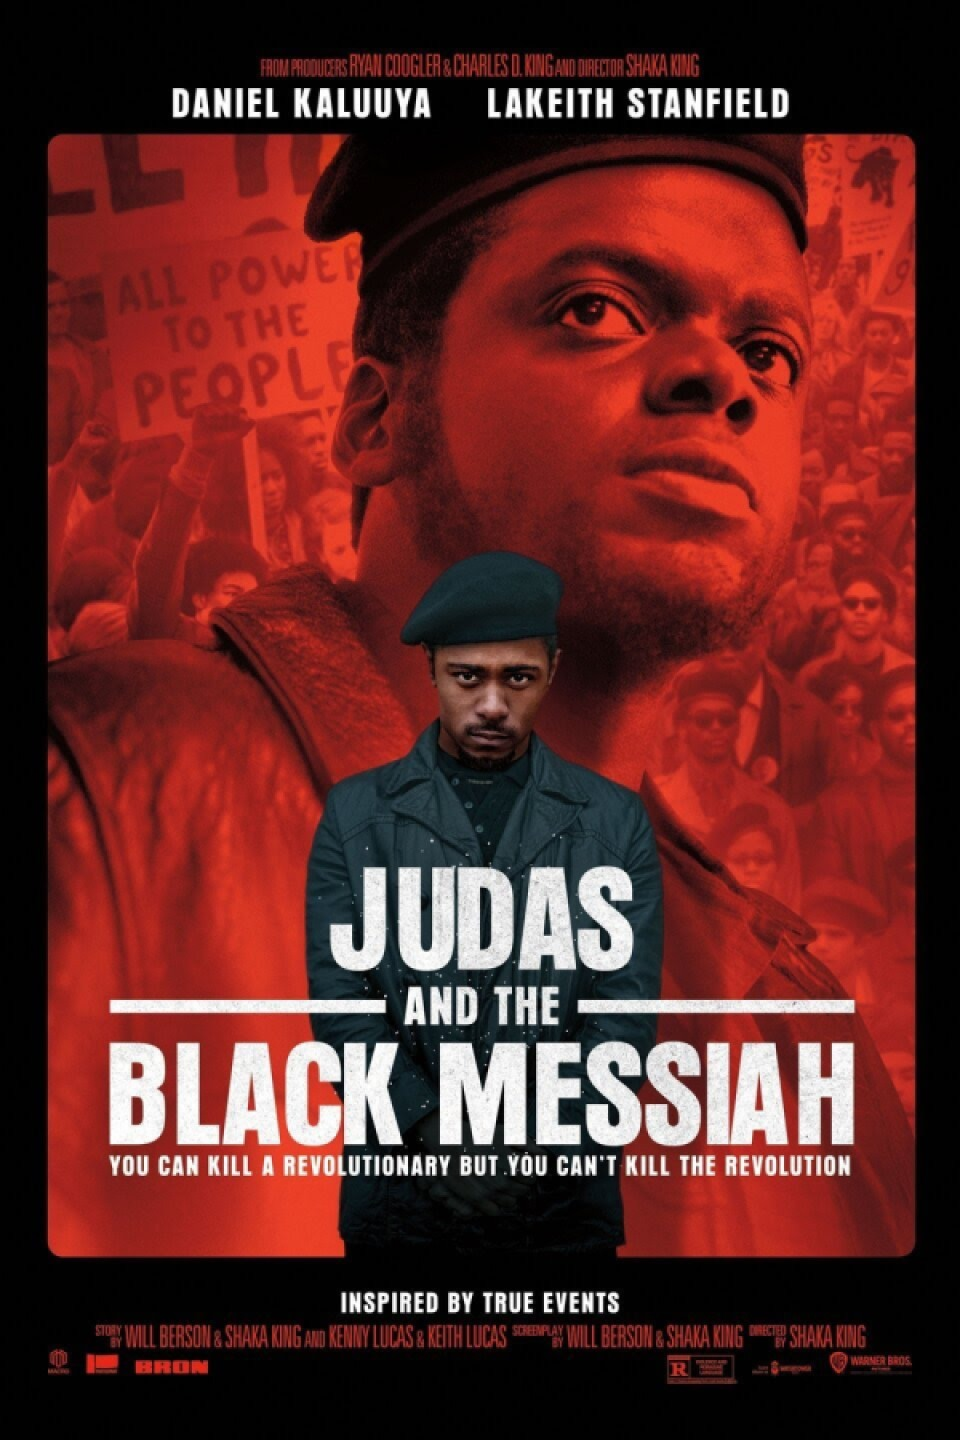 "Image shows text that reads ""Judas and the black messiah"" in white. a black male stands in the text wearing all black and a beret, while another one is juxtaposed behind him with a red filter covering him."